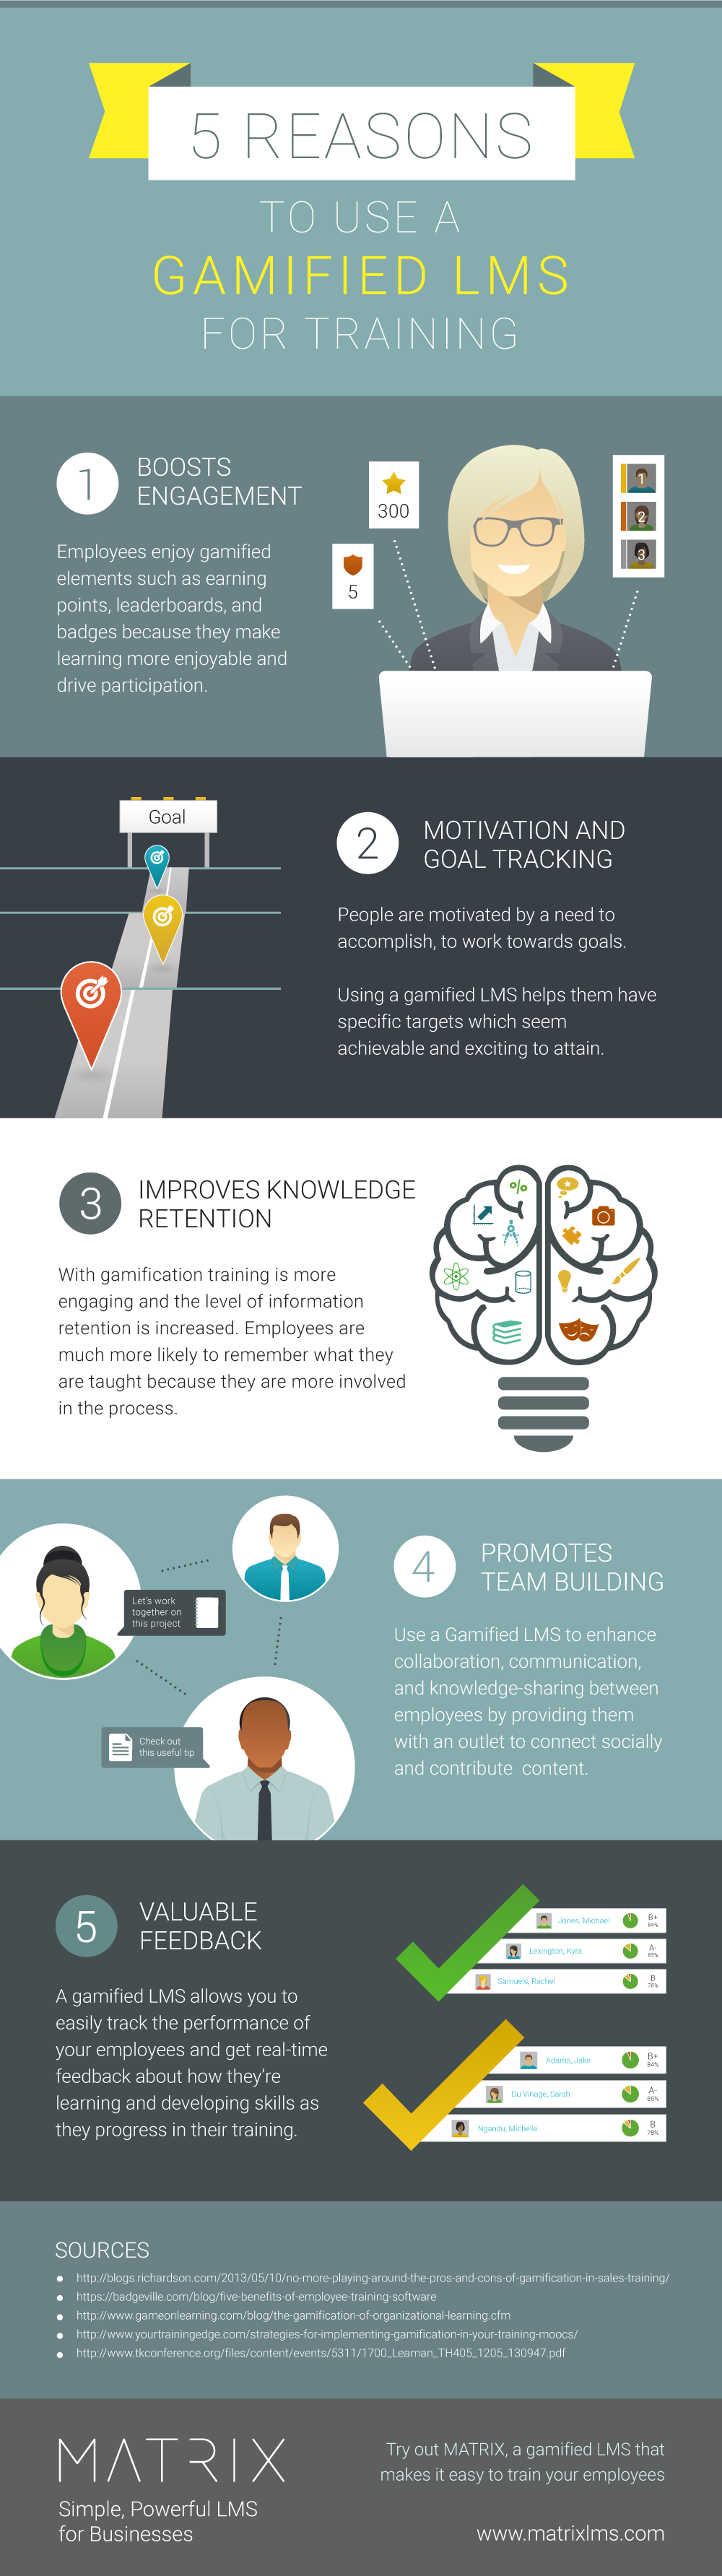 5 Reasons to Use a Gamified LMS for Training Infographic - http://elearninginfographics.com/5-reasons-use-gamified-lms-training-infographic/